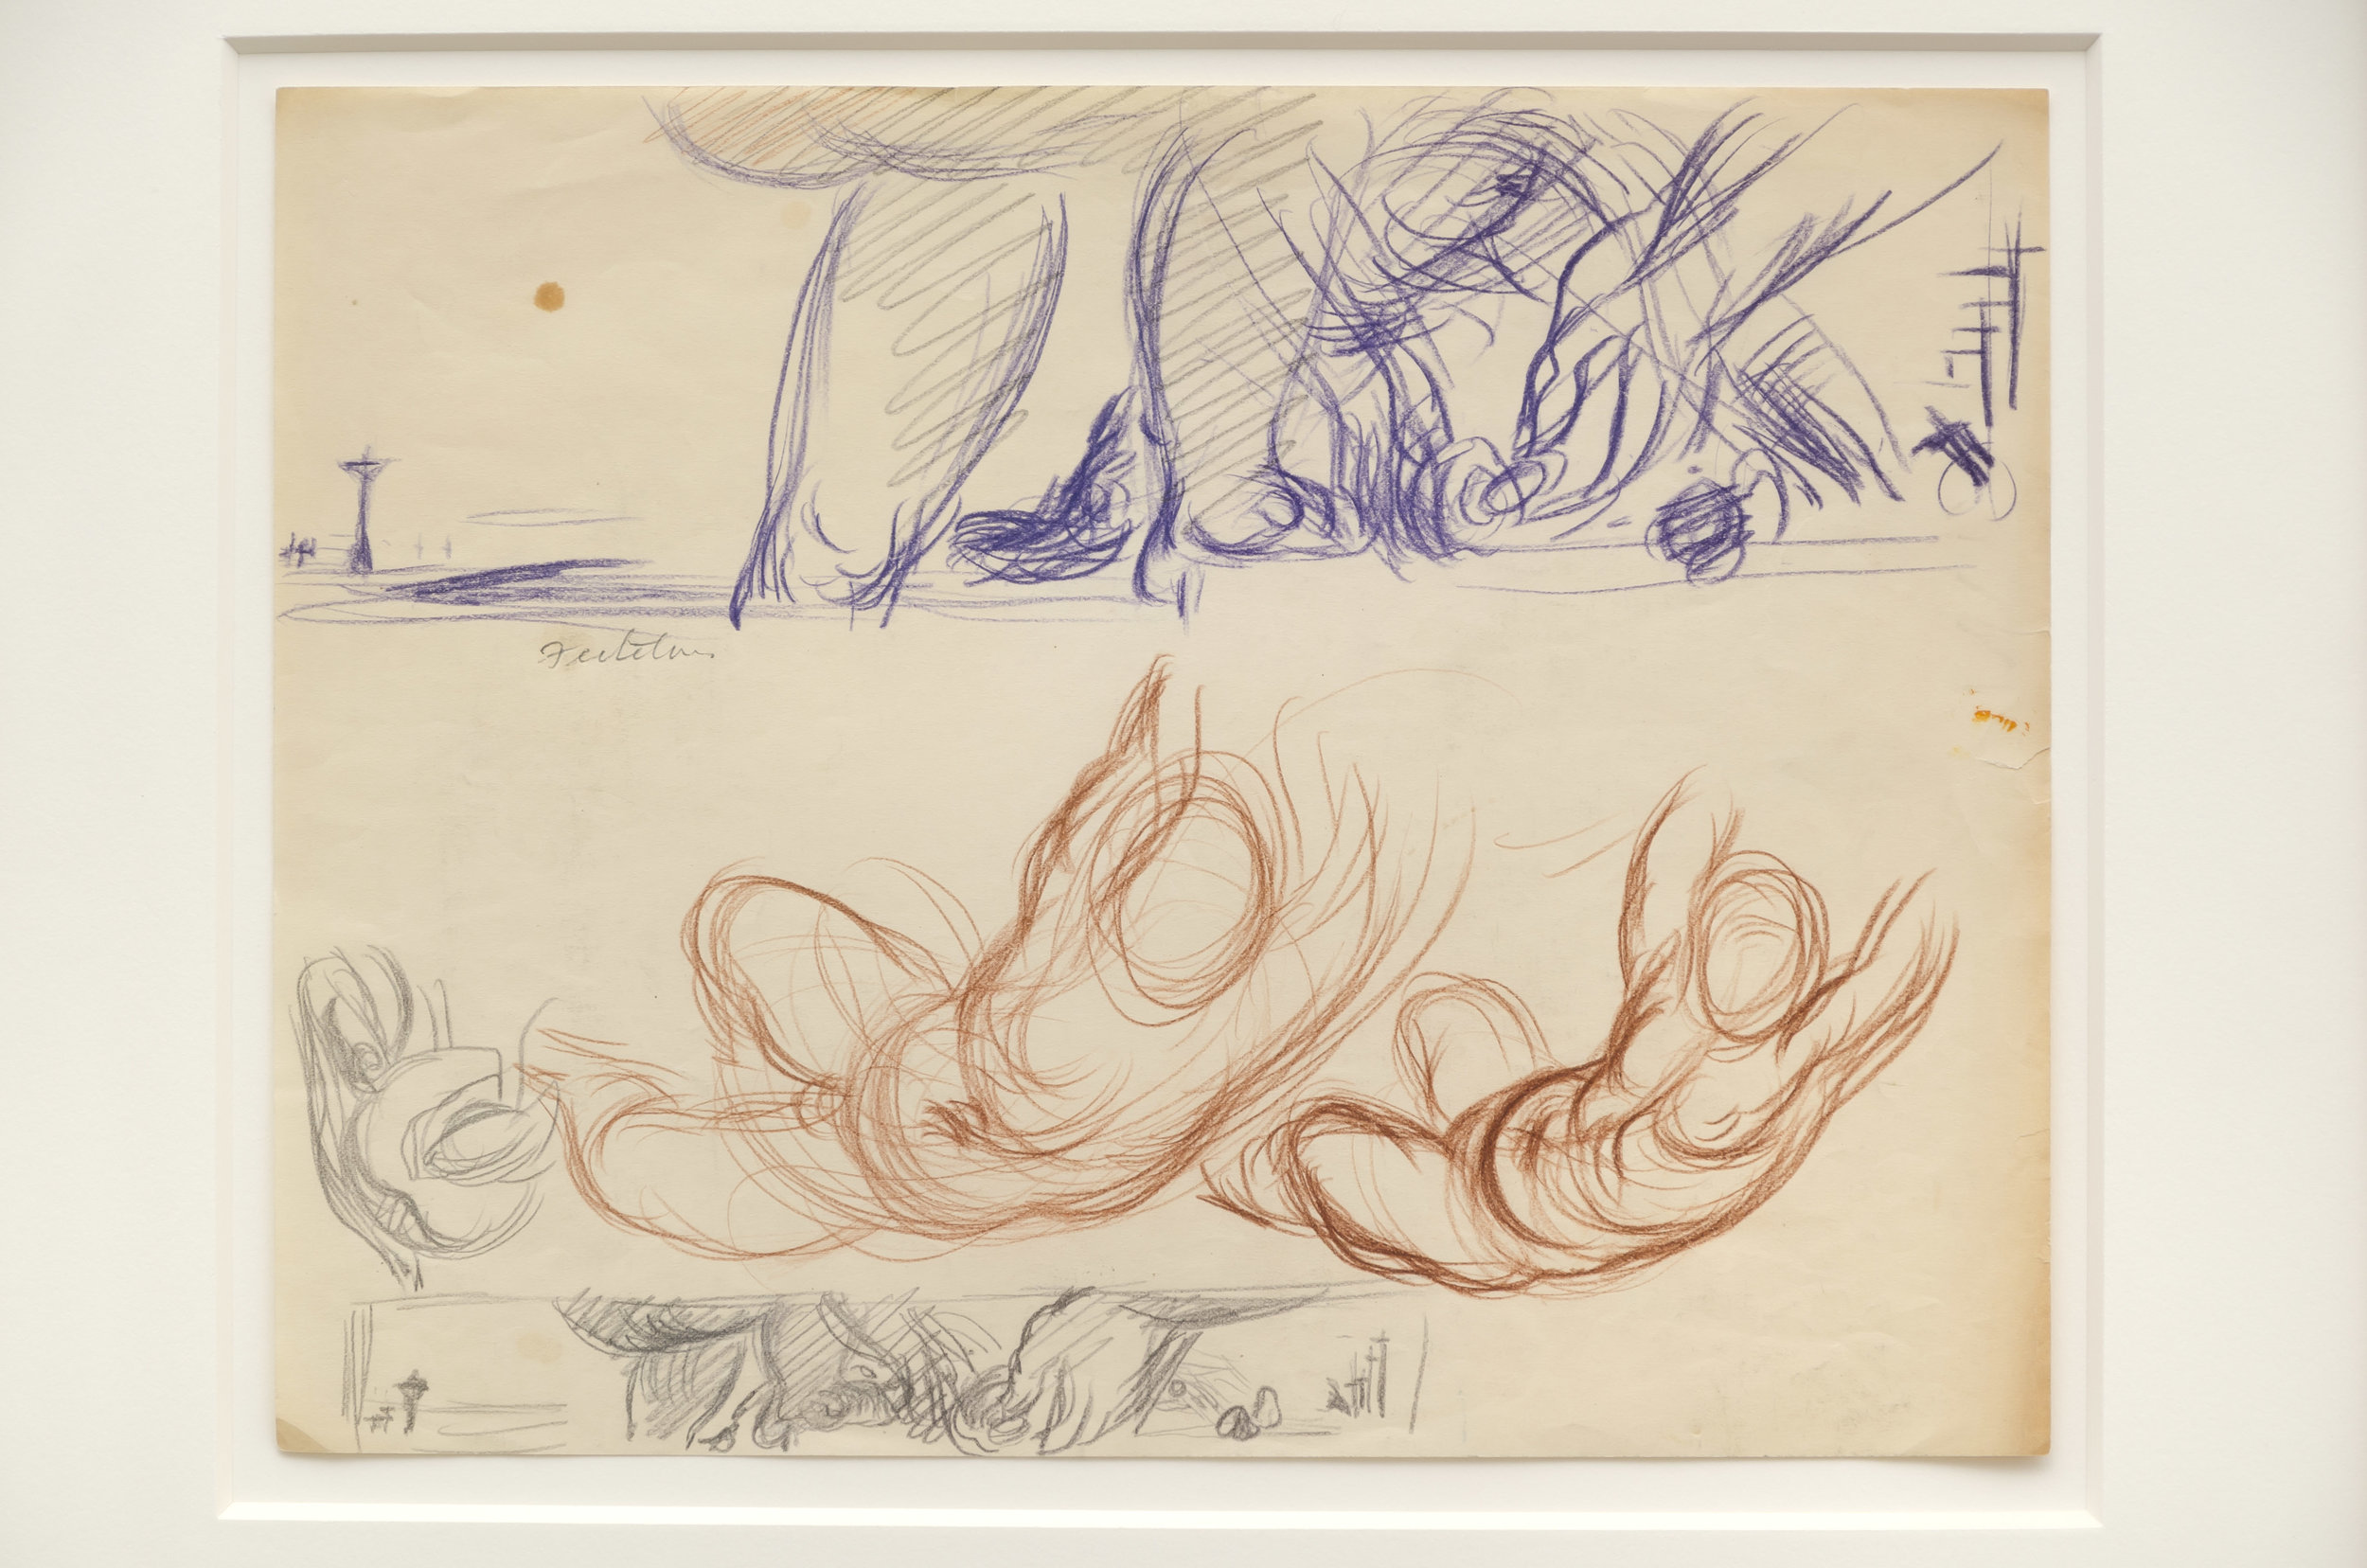 Lorser Feitelson (1898-1978)   Study for Flight Over New York , c. 1935 colored pencil and graphite on paper  8 1/2 x 11 inches; 21.6 x 27.9 centimeters